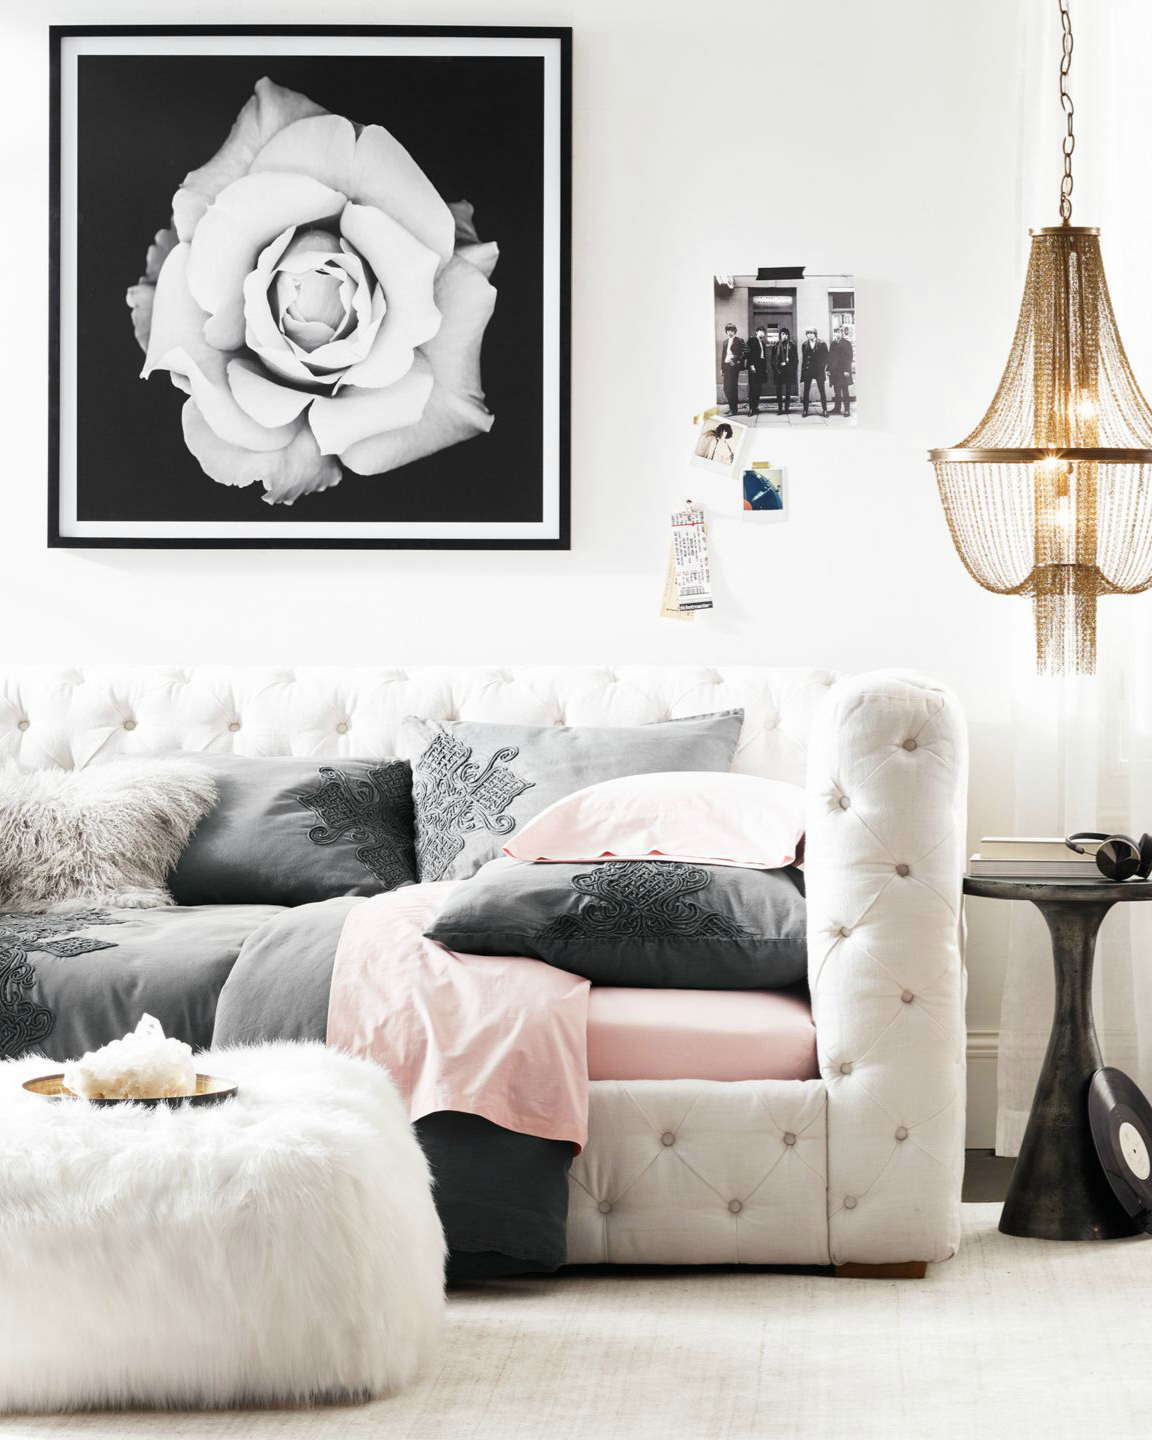 Elegant Tufted Daybed Edgy Accents Glam Style For A Girl S